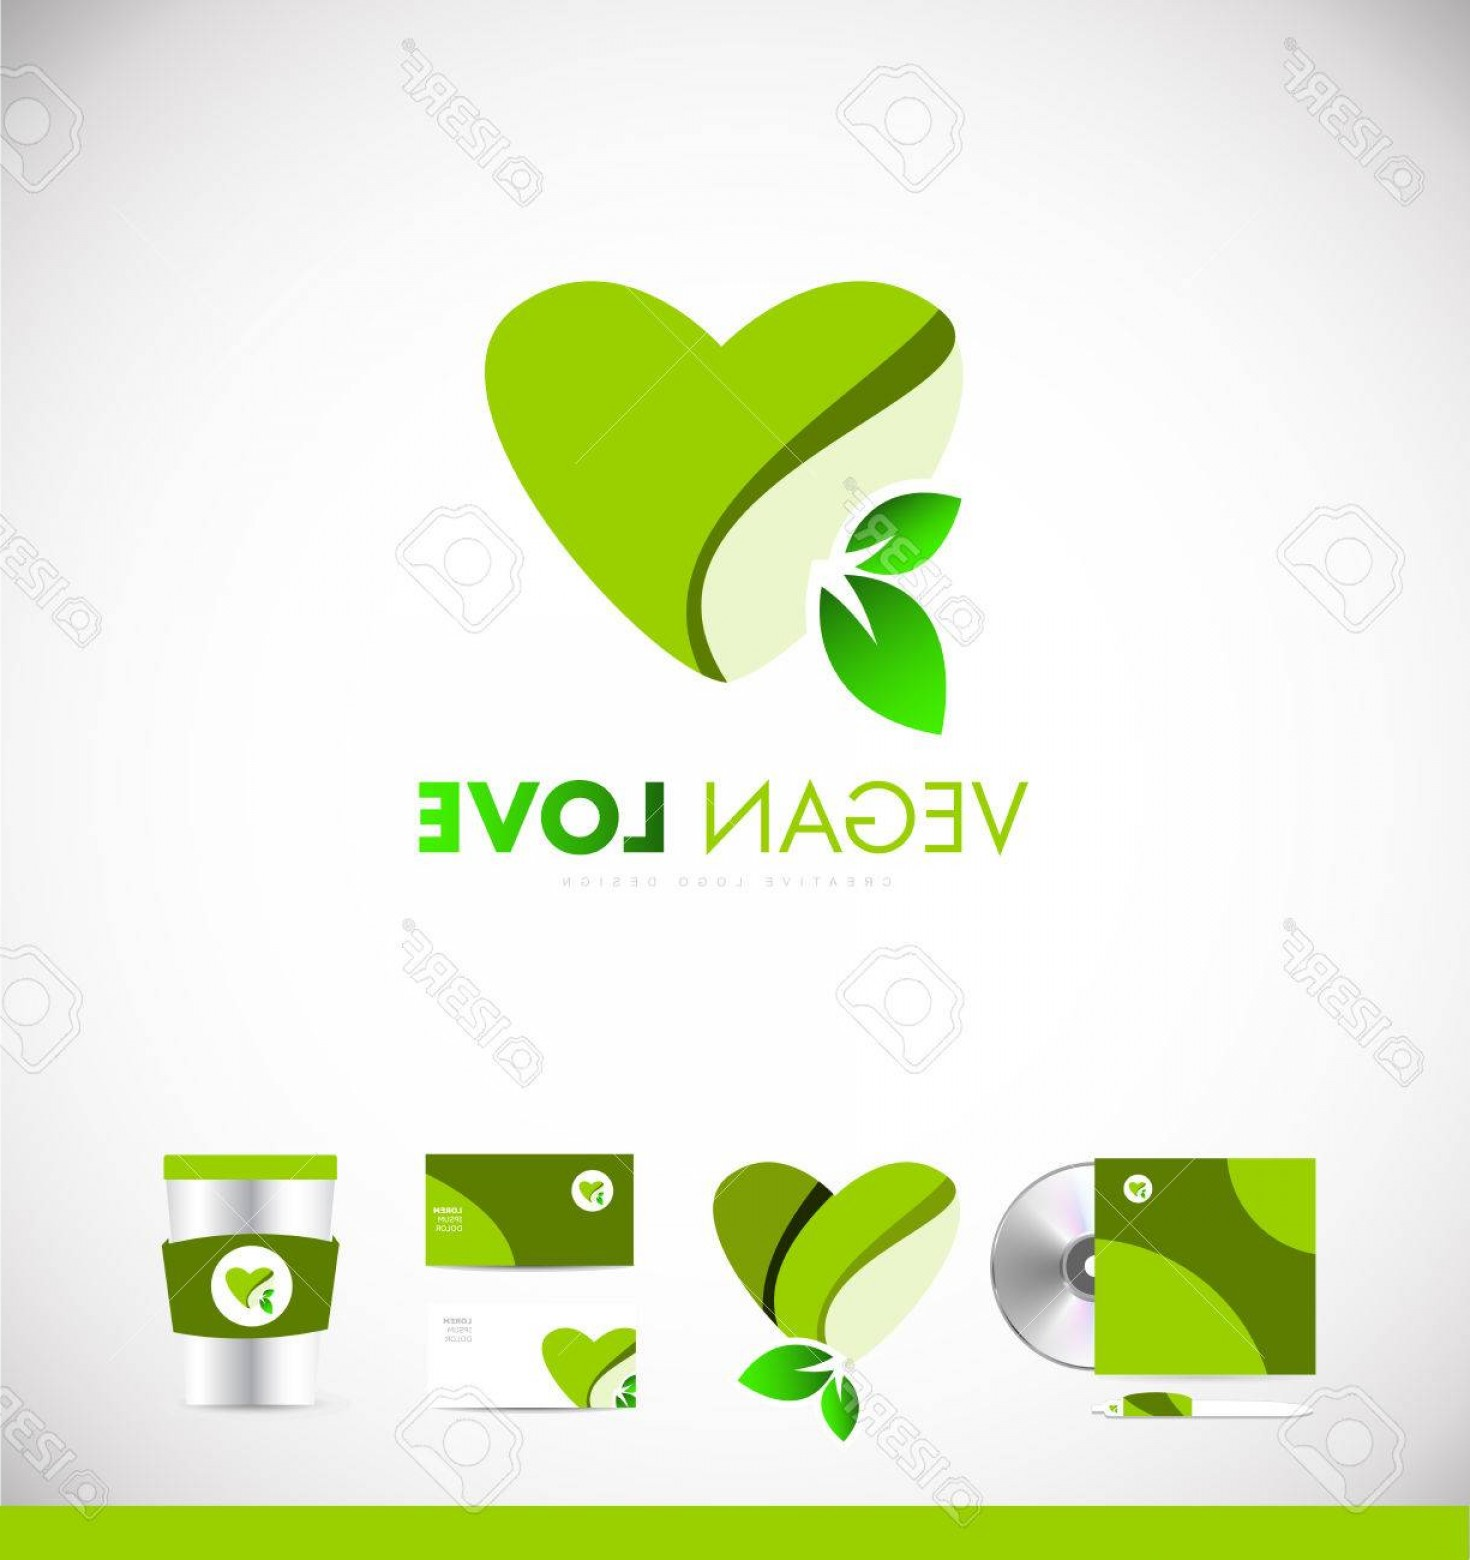 Vegan Heart Vectors: Photostock Vector Green Vegan Heart Leaf Love Concept Vector Logo Icon Sign Design Template Corporate Identity